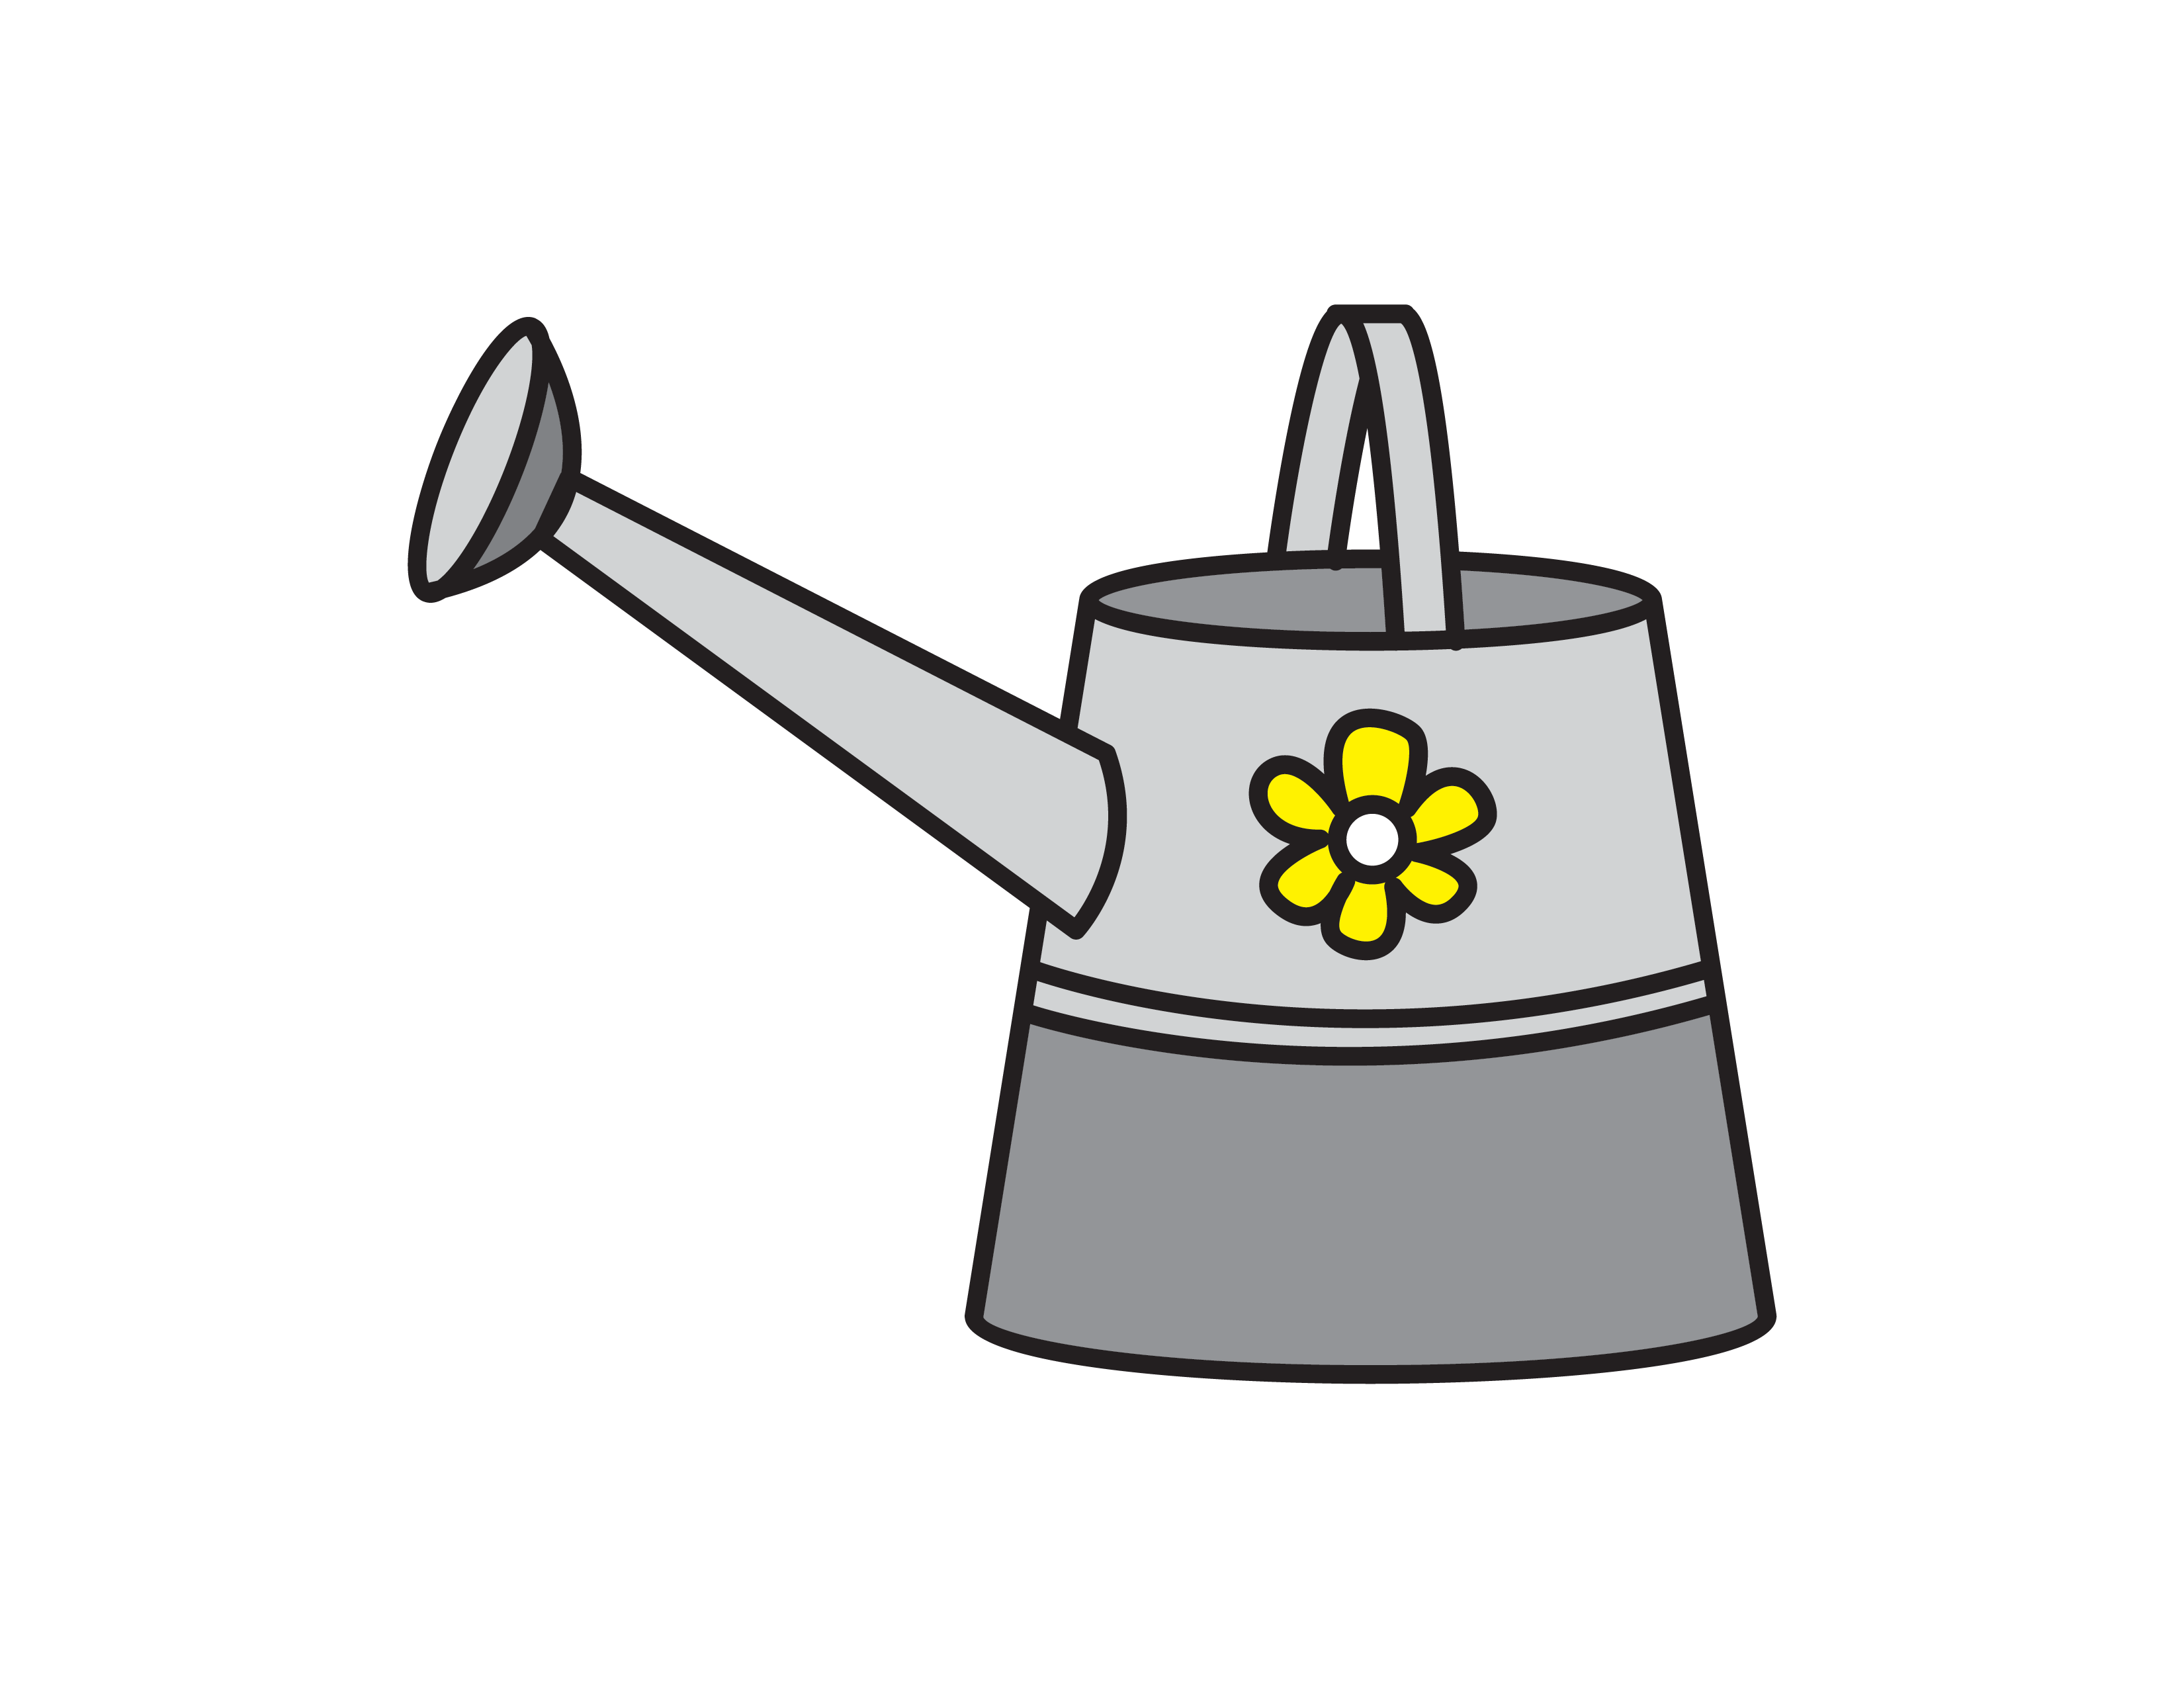 How To Draw a Watering Can (Easy Starting Art Guides for Kids)